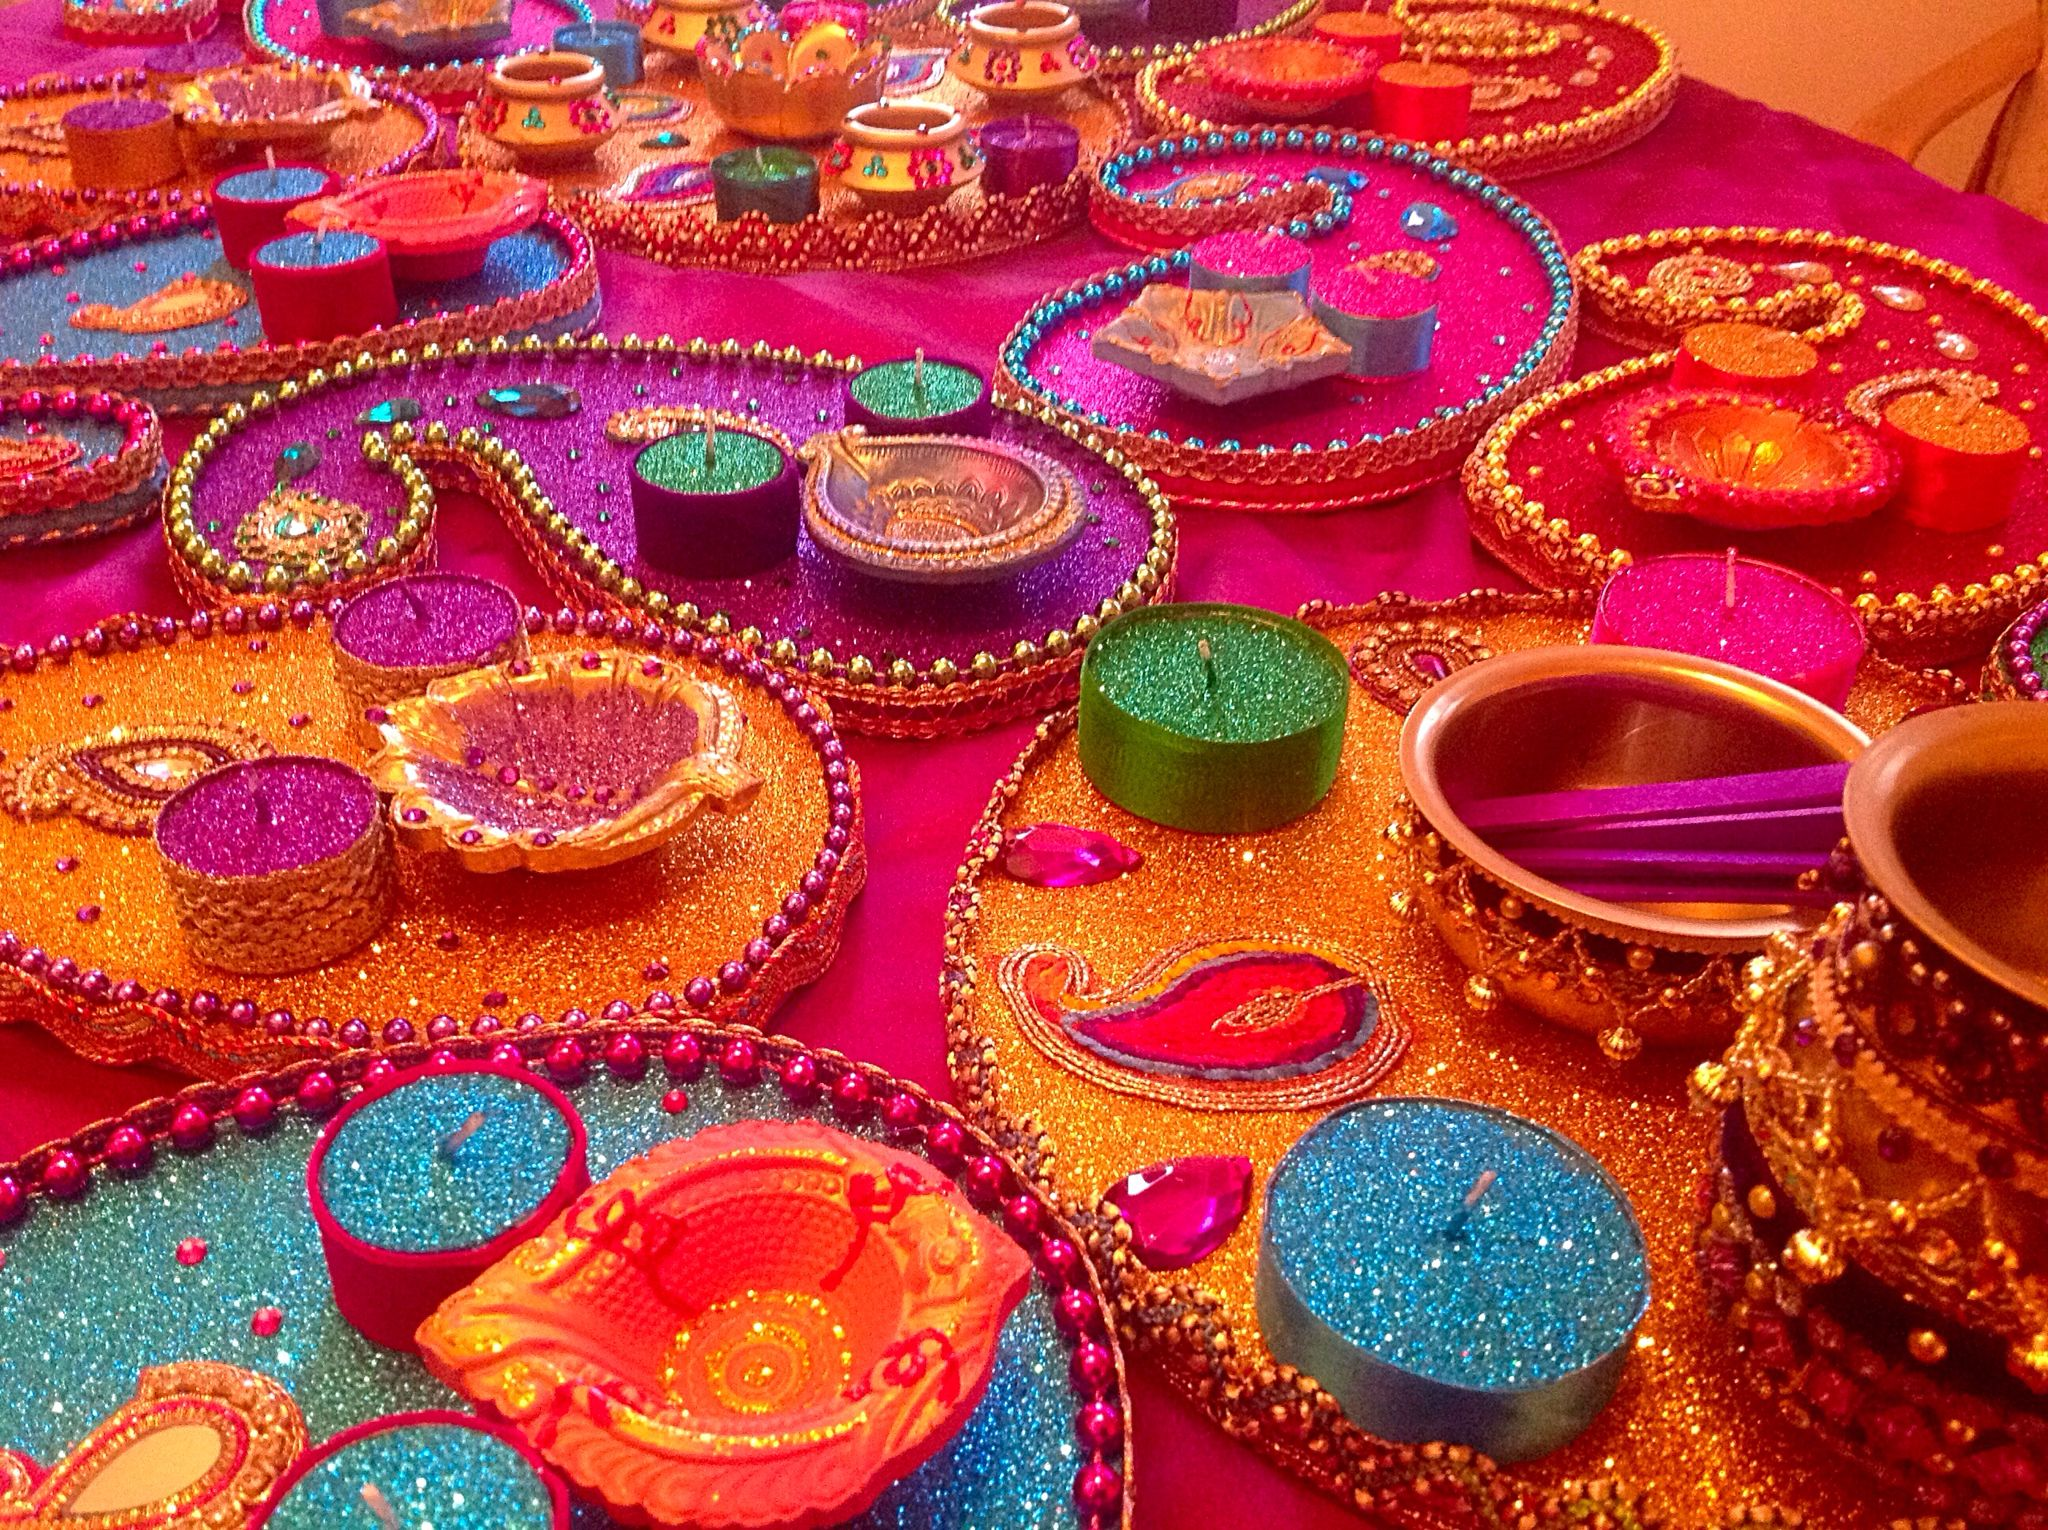 Mehndi Party Trays : Multi coloured mehndi plates see my facebook page